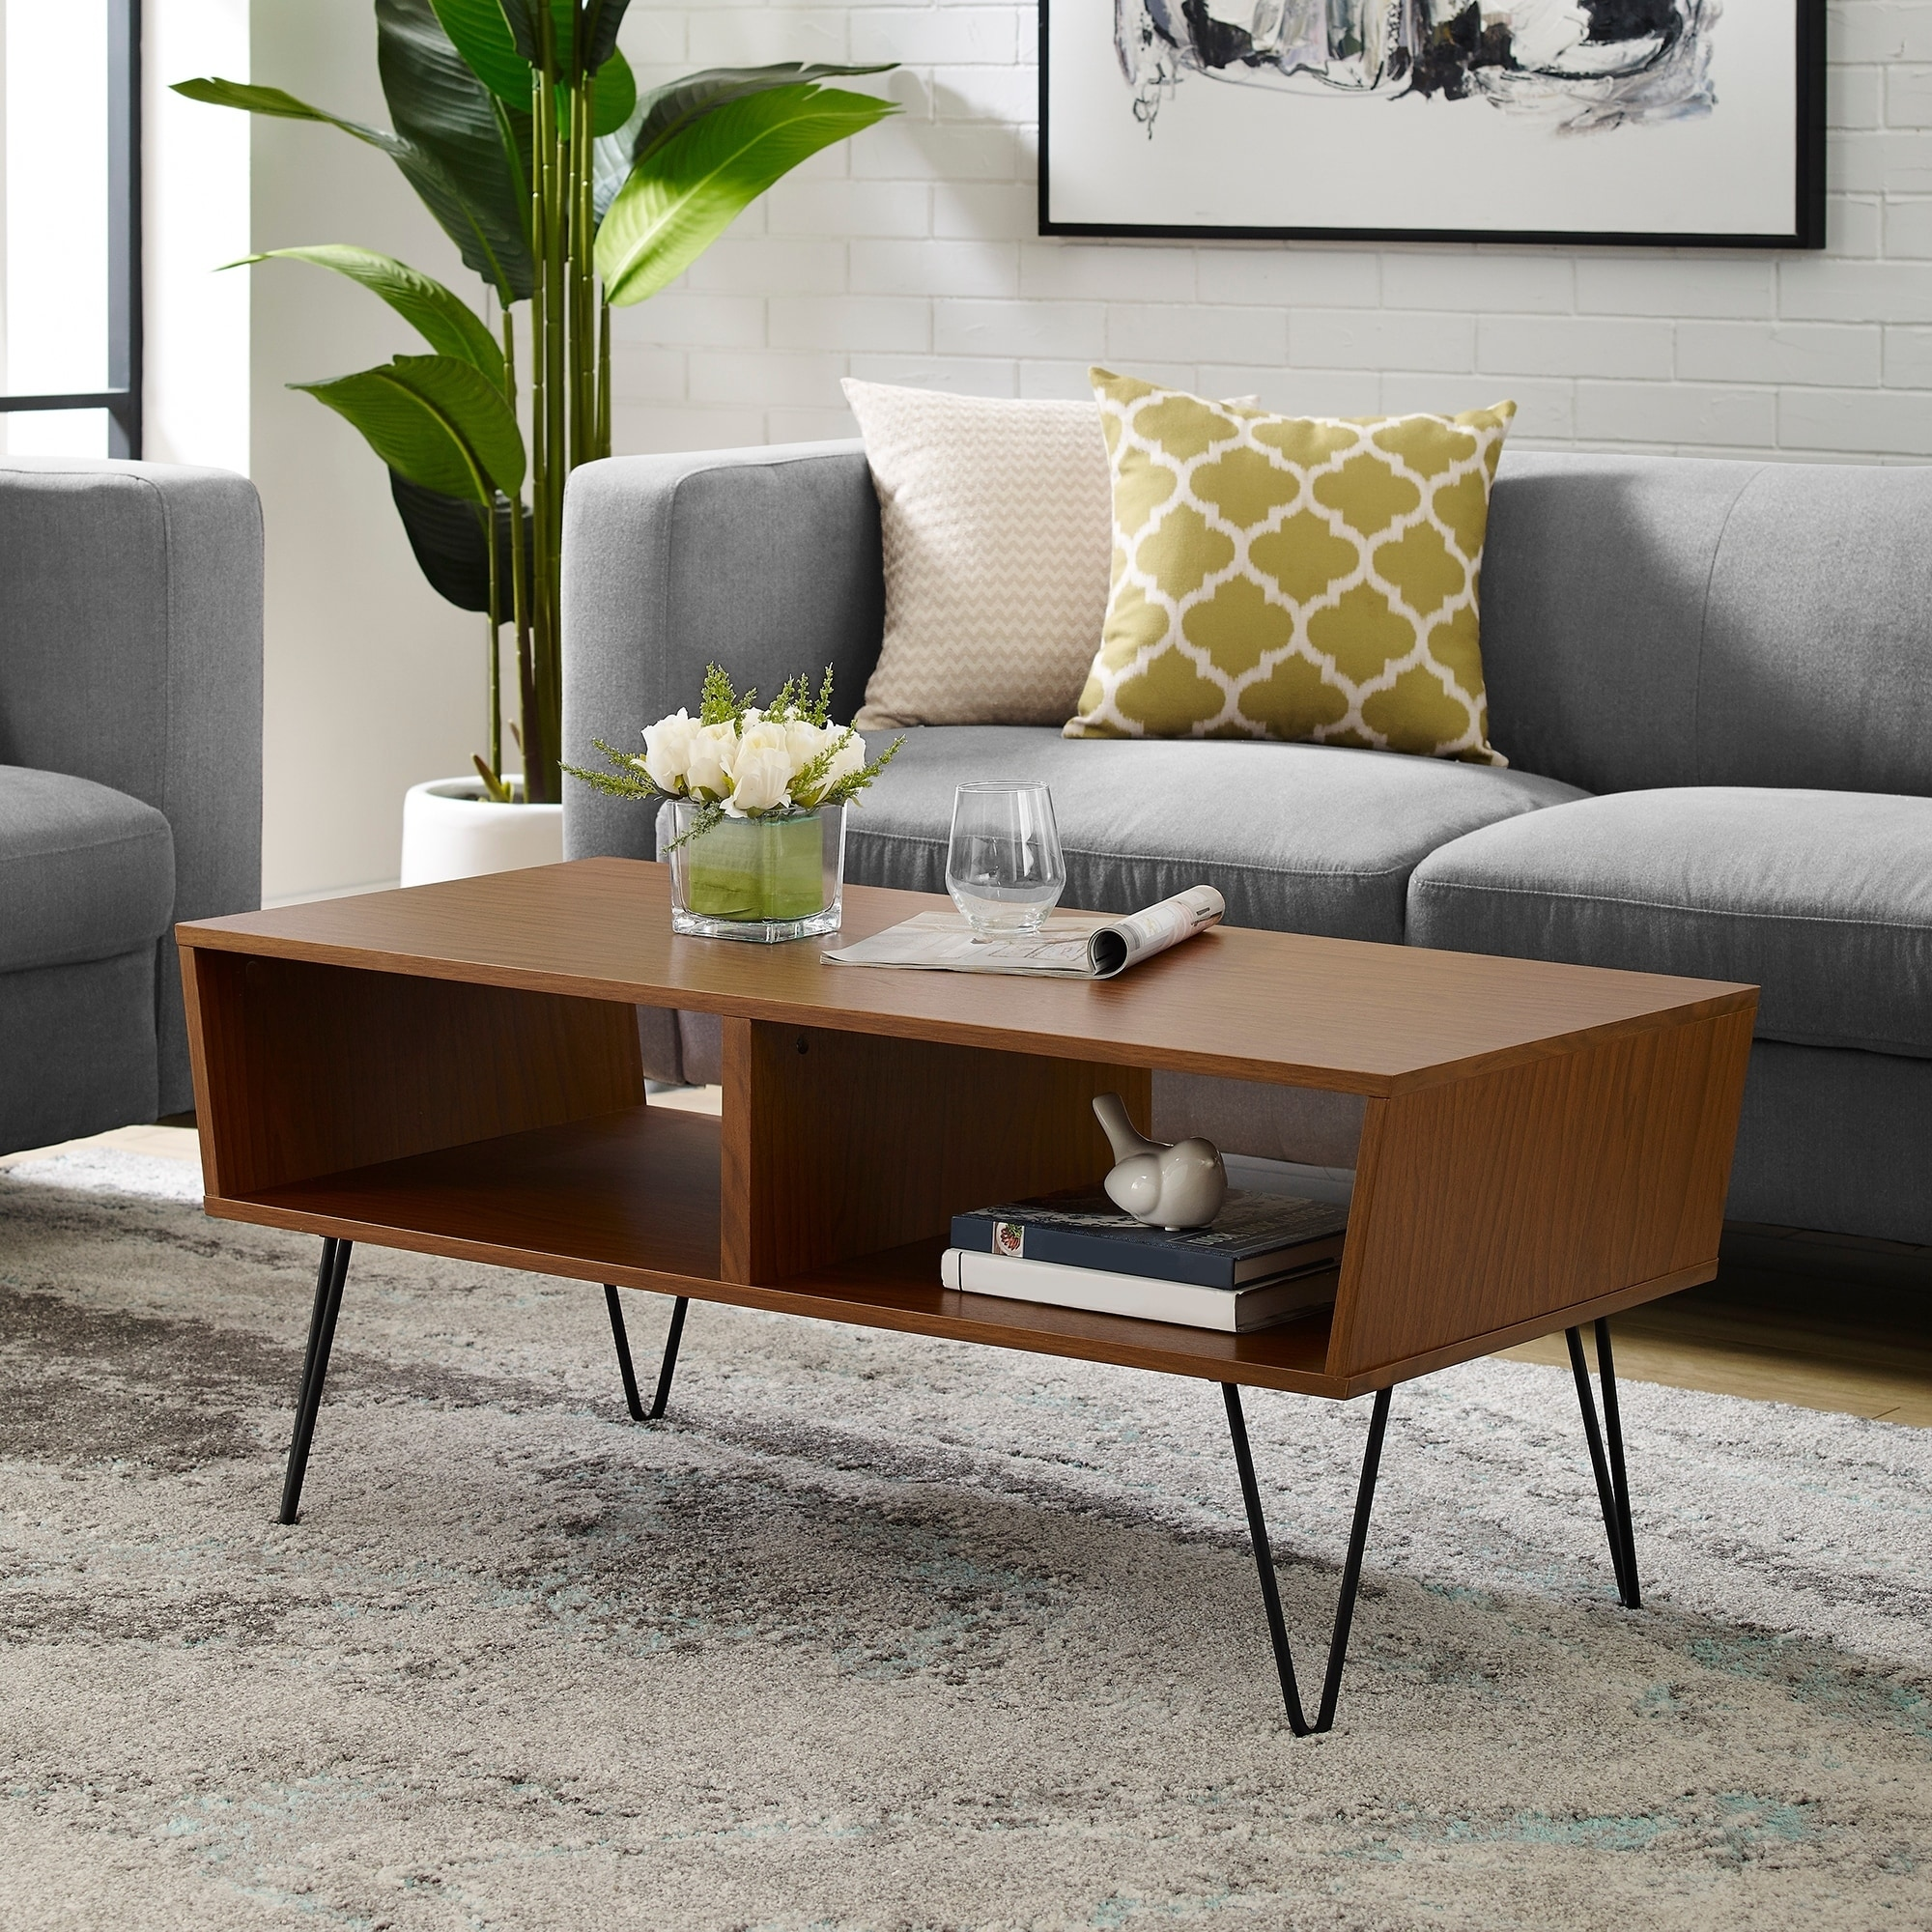 Details About Mid Century Angled Coffee Table With Hairpin Legs 42 X 20 18h